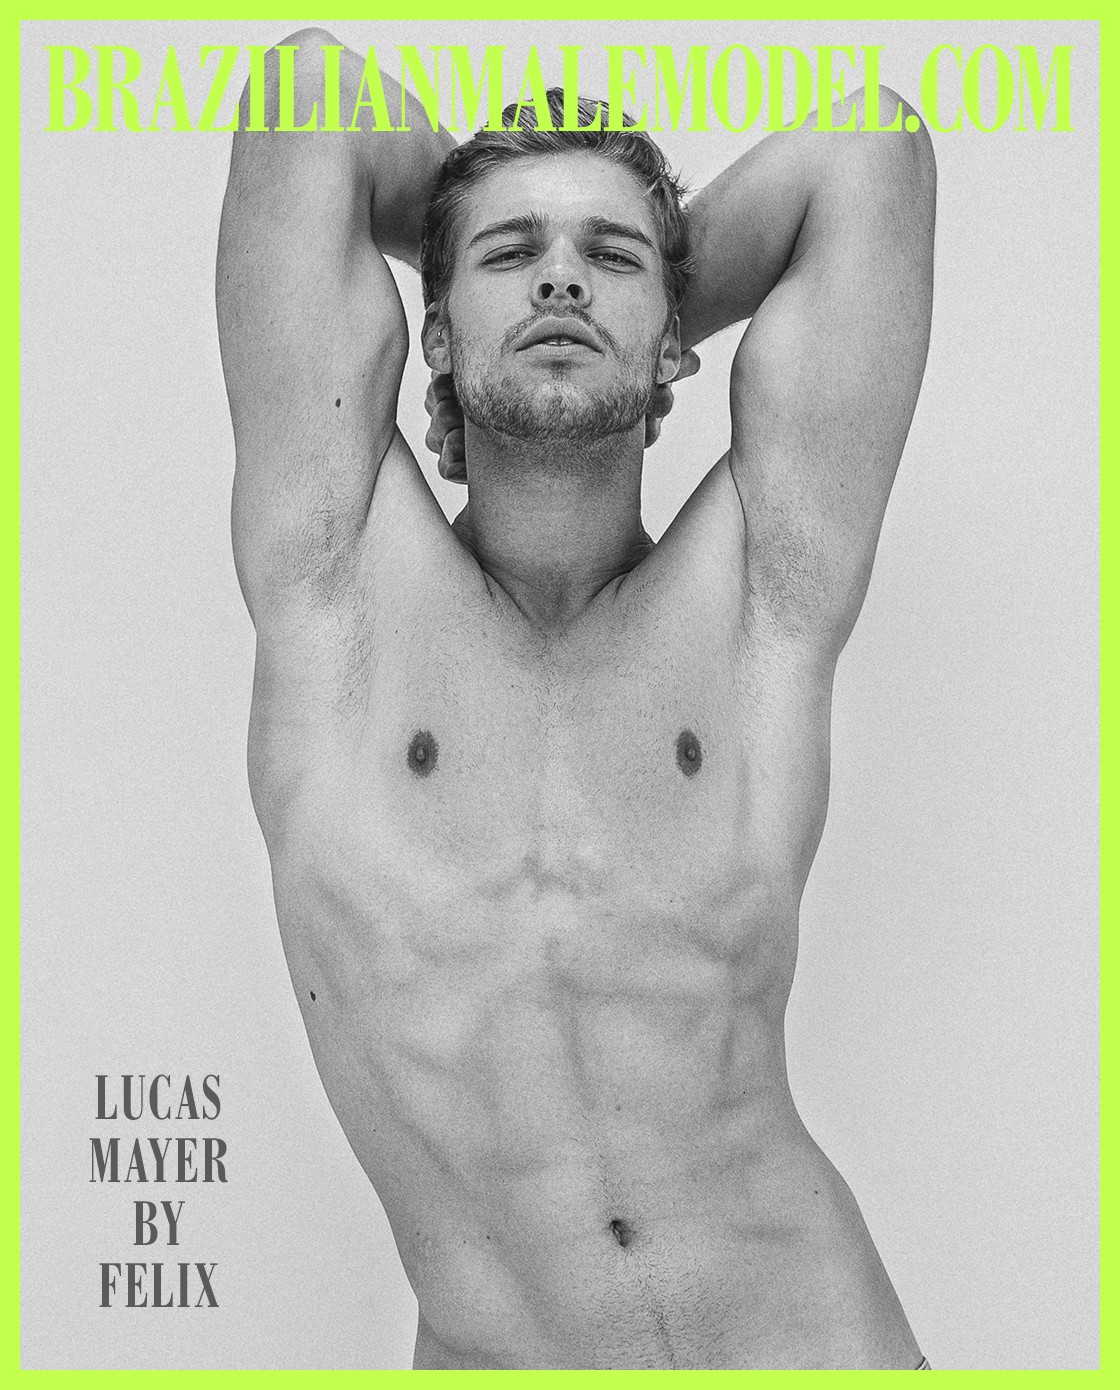 LUCAS MAYER X FELIX X BRAZILIAN MALE MODEL X YUP MAGAZINE